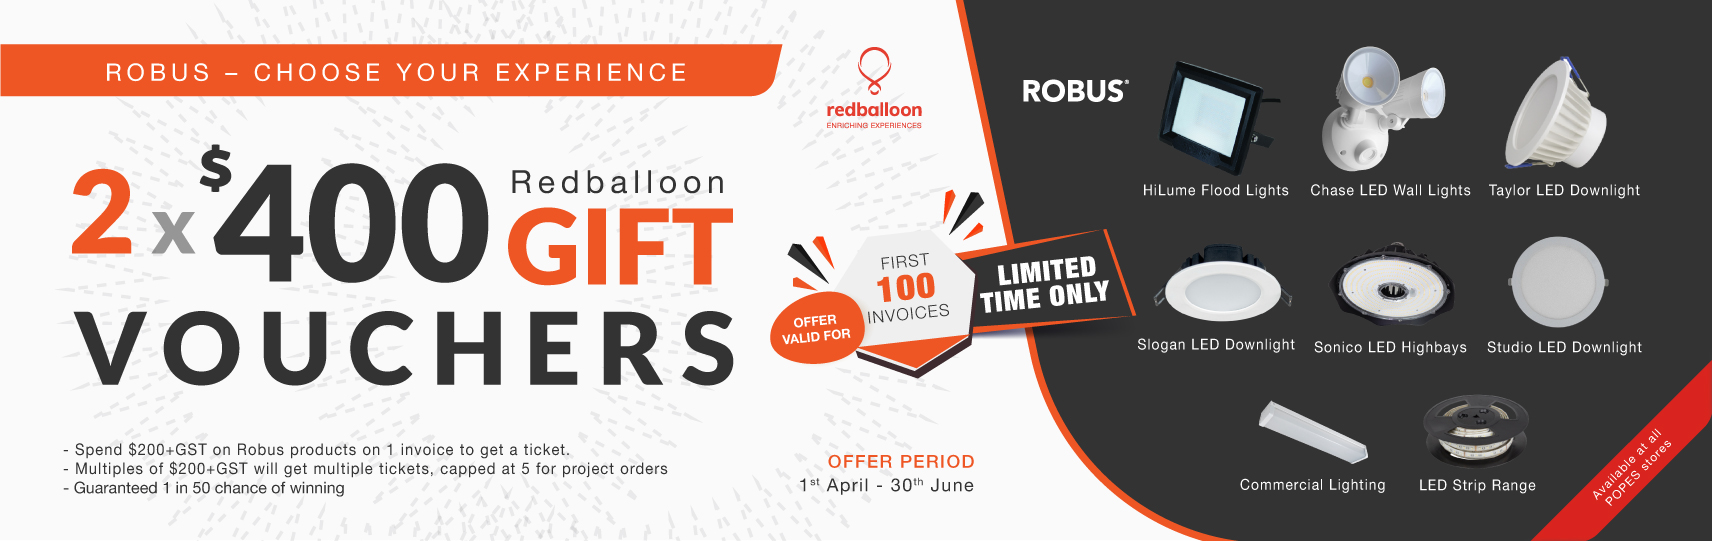 Robus Choose Your Experience